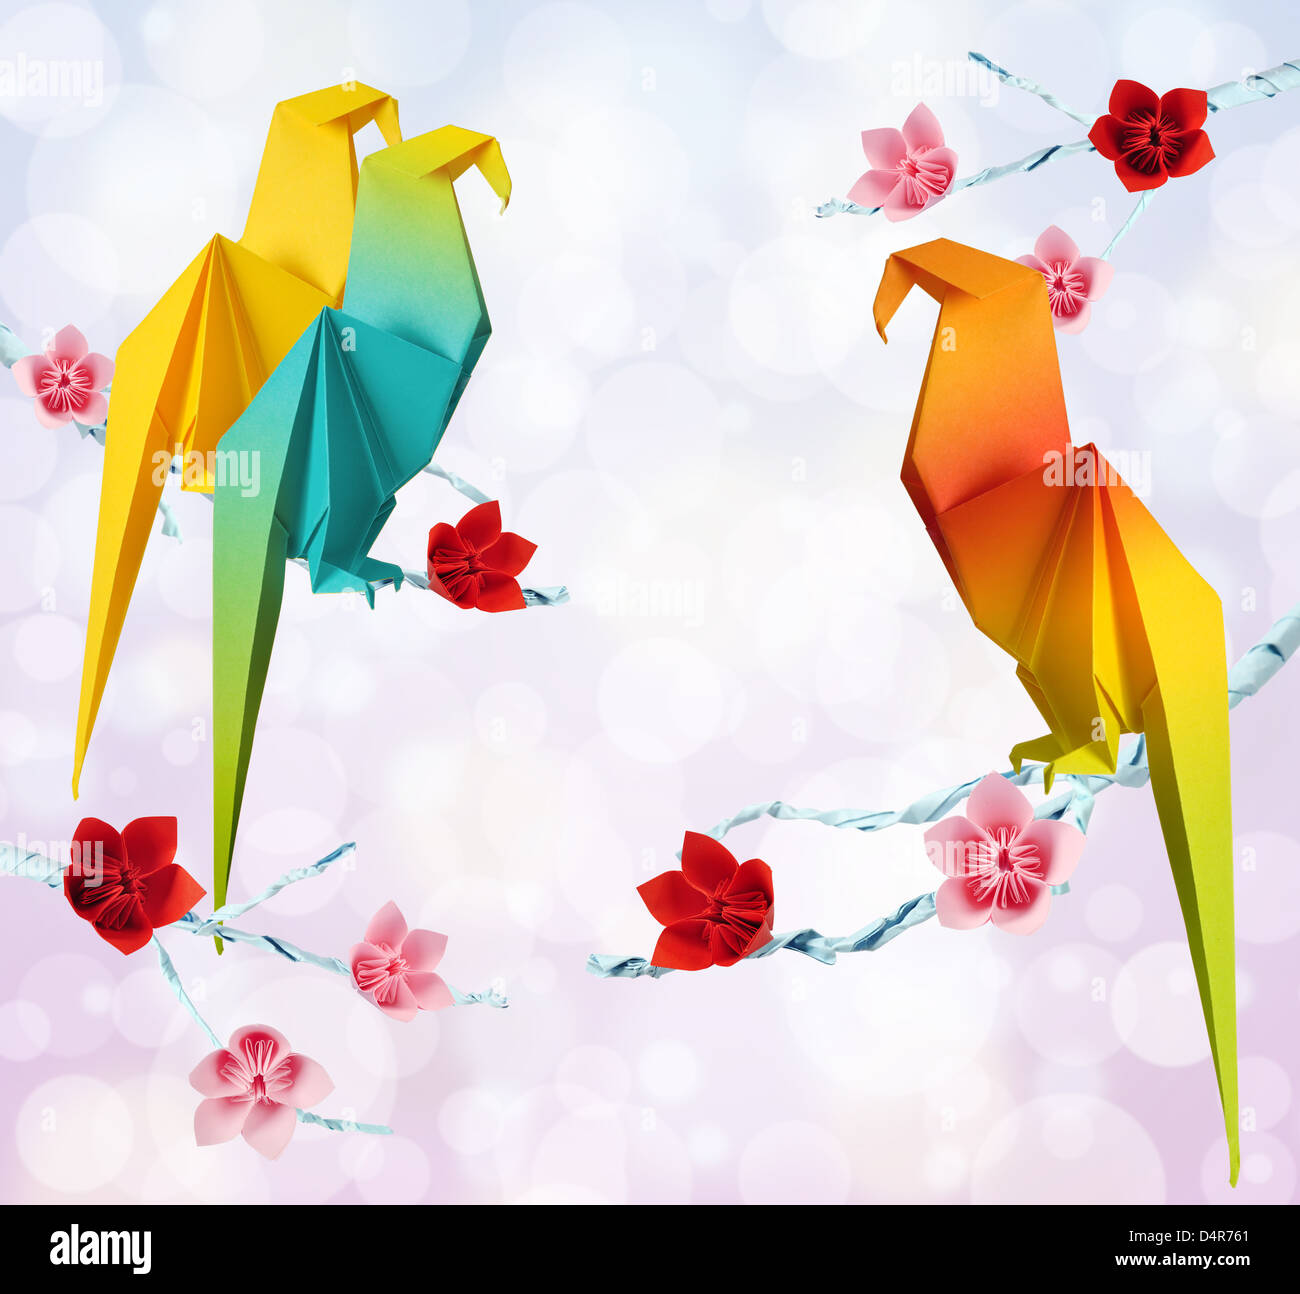 Parrot Flowers Stock Photos Images Alamy Origamiorigami Macaw Parrotorigami Diagram Origami Parrots On A Branches Trees With Pink Background Image